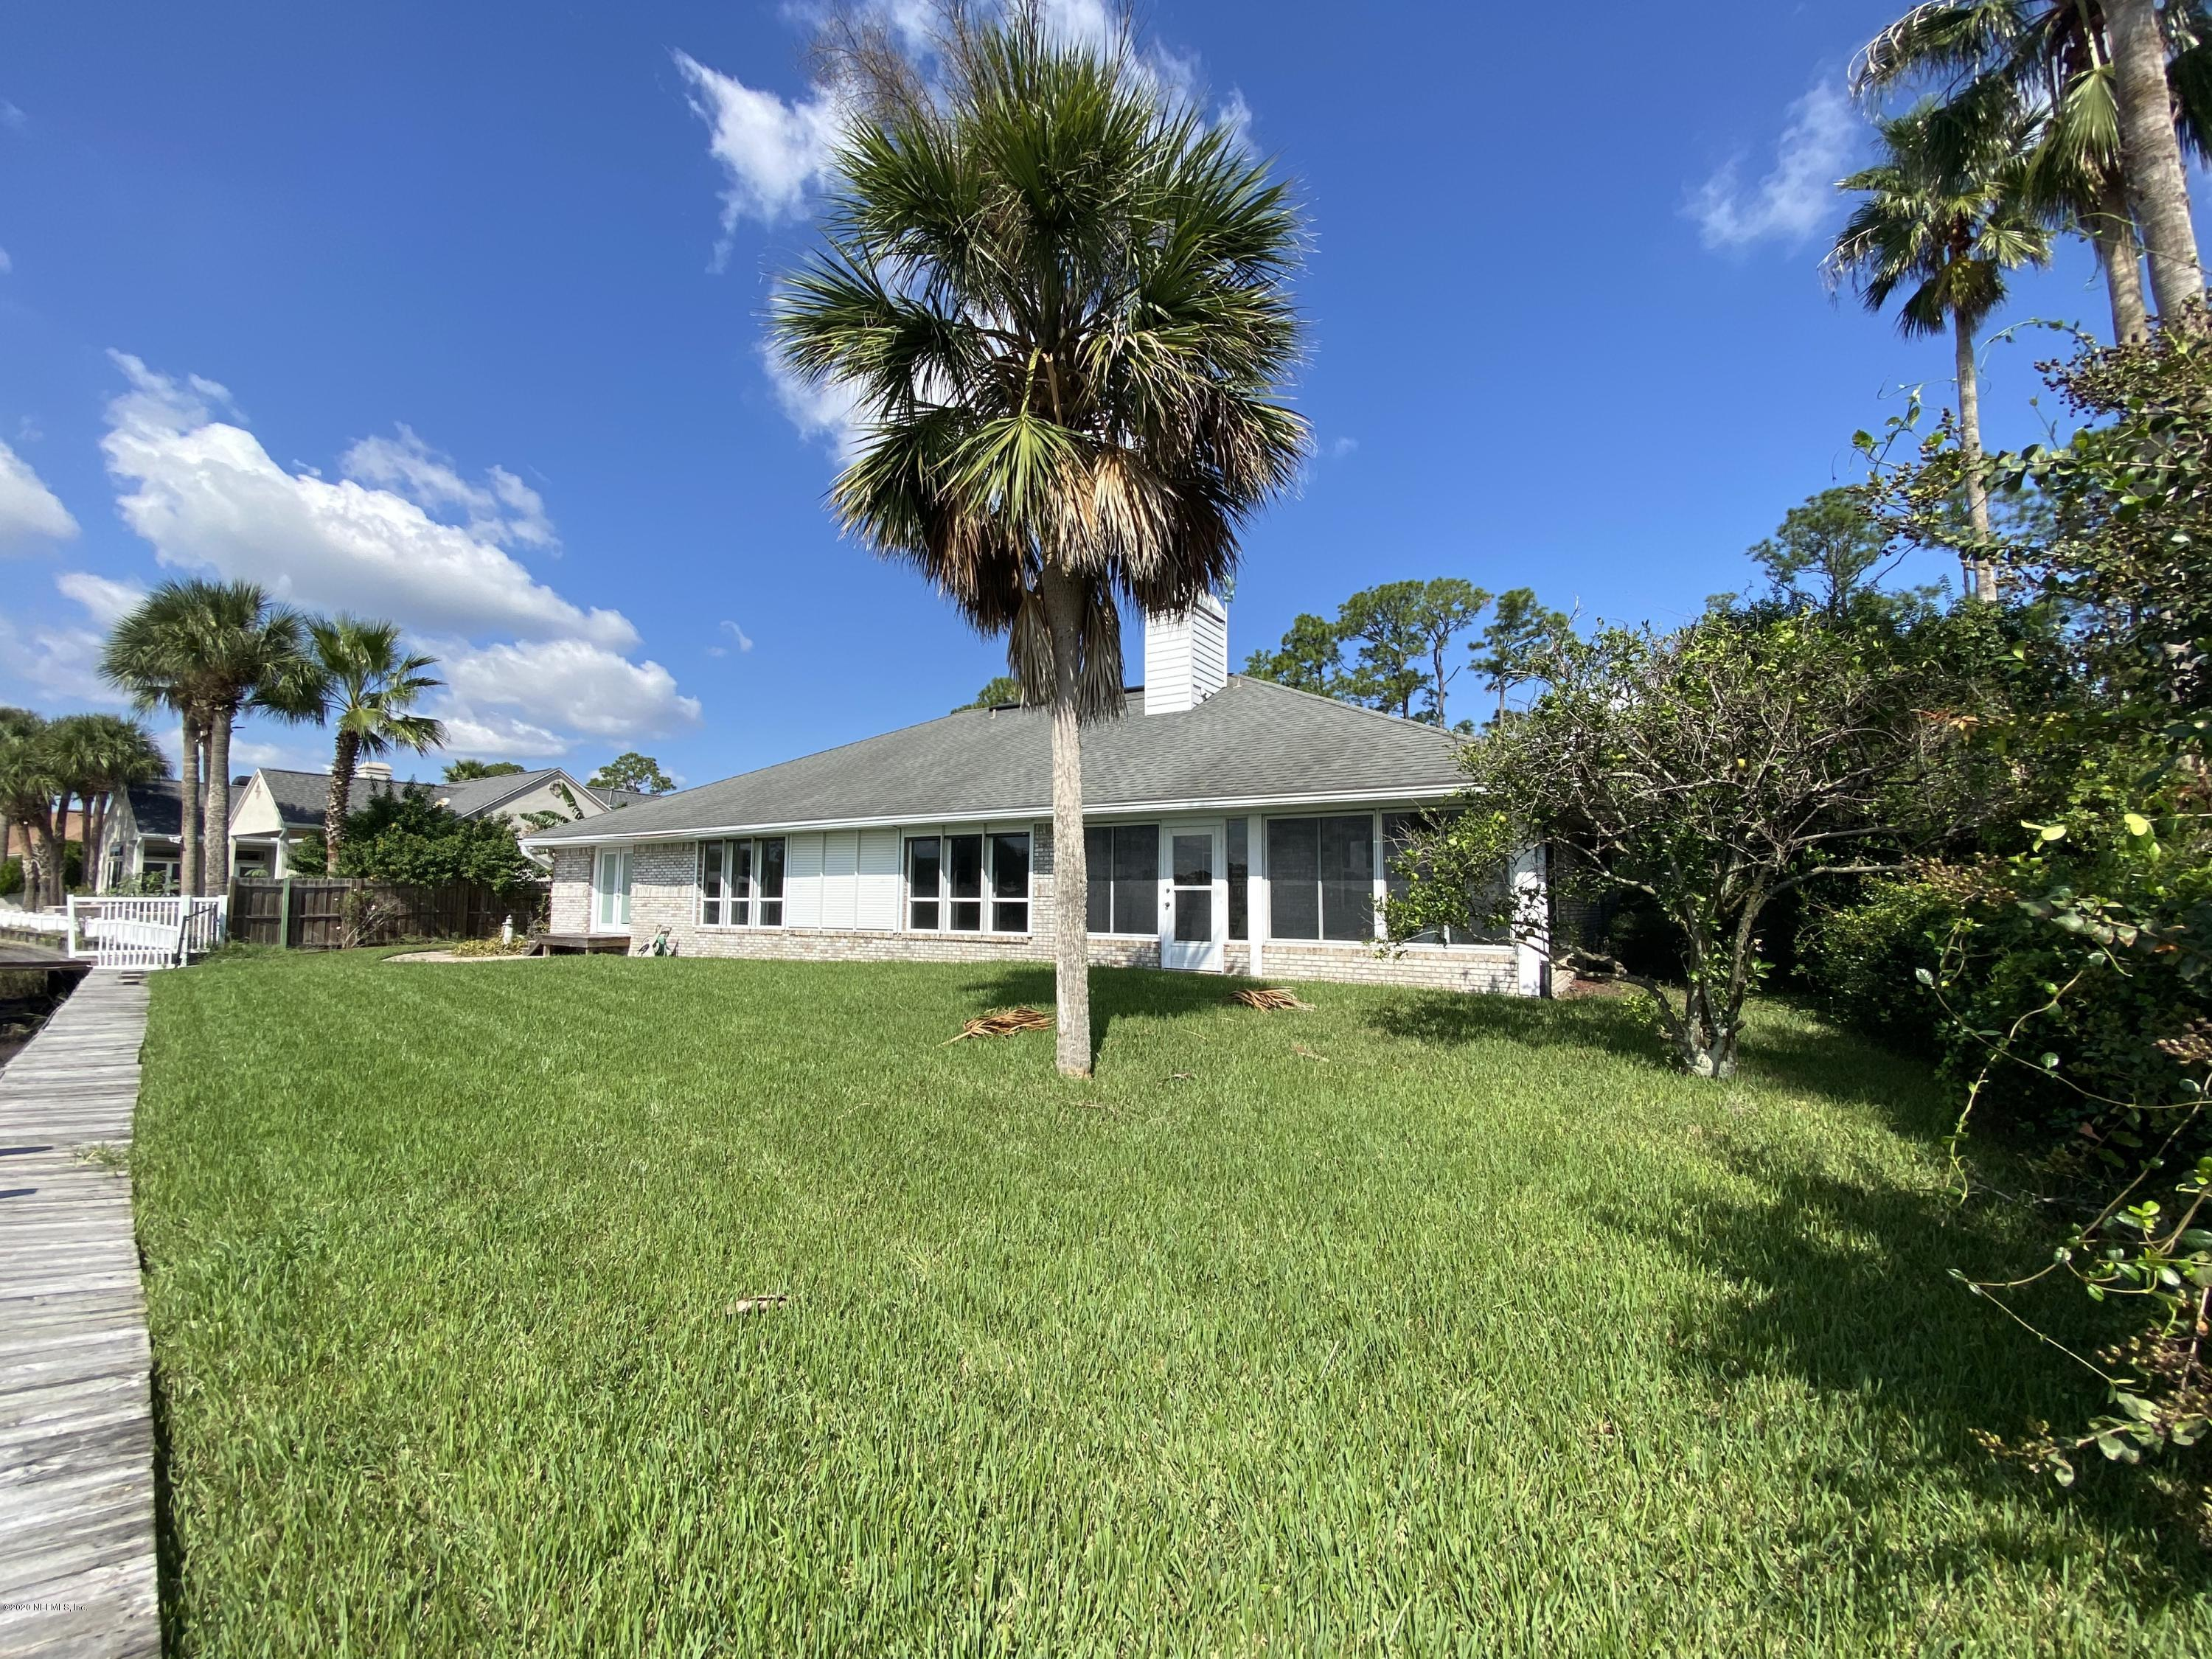 14616 SAN PABLO, JACKSONVILLE, FLORIDA 32224, 3 Bedrooms Bedrooms, ,3 BathroomsBathrooms,Residential,For sale,SAN PABLO,1078945